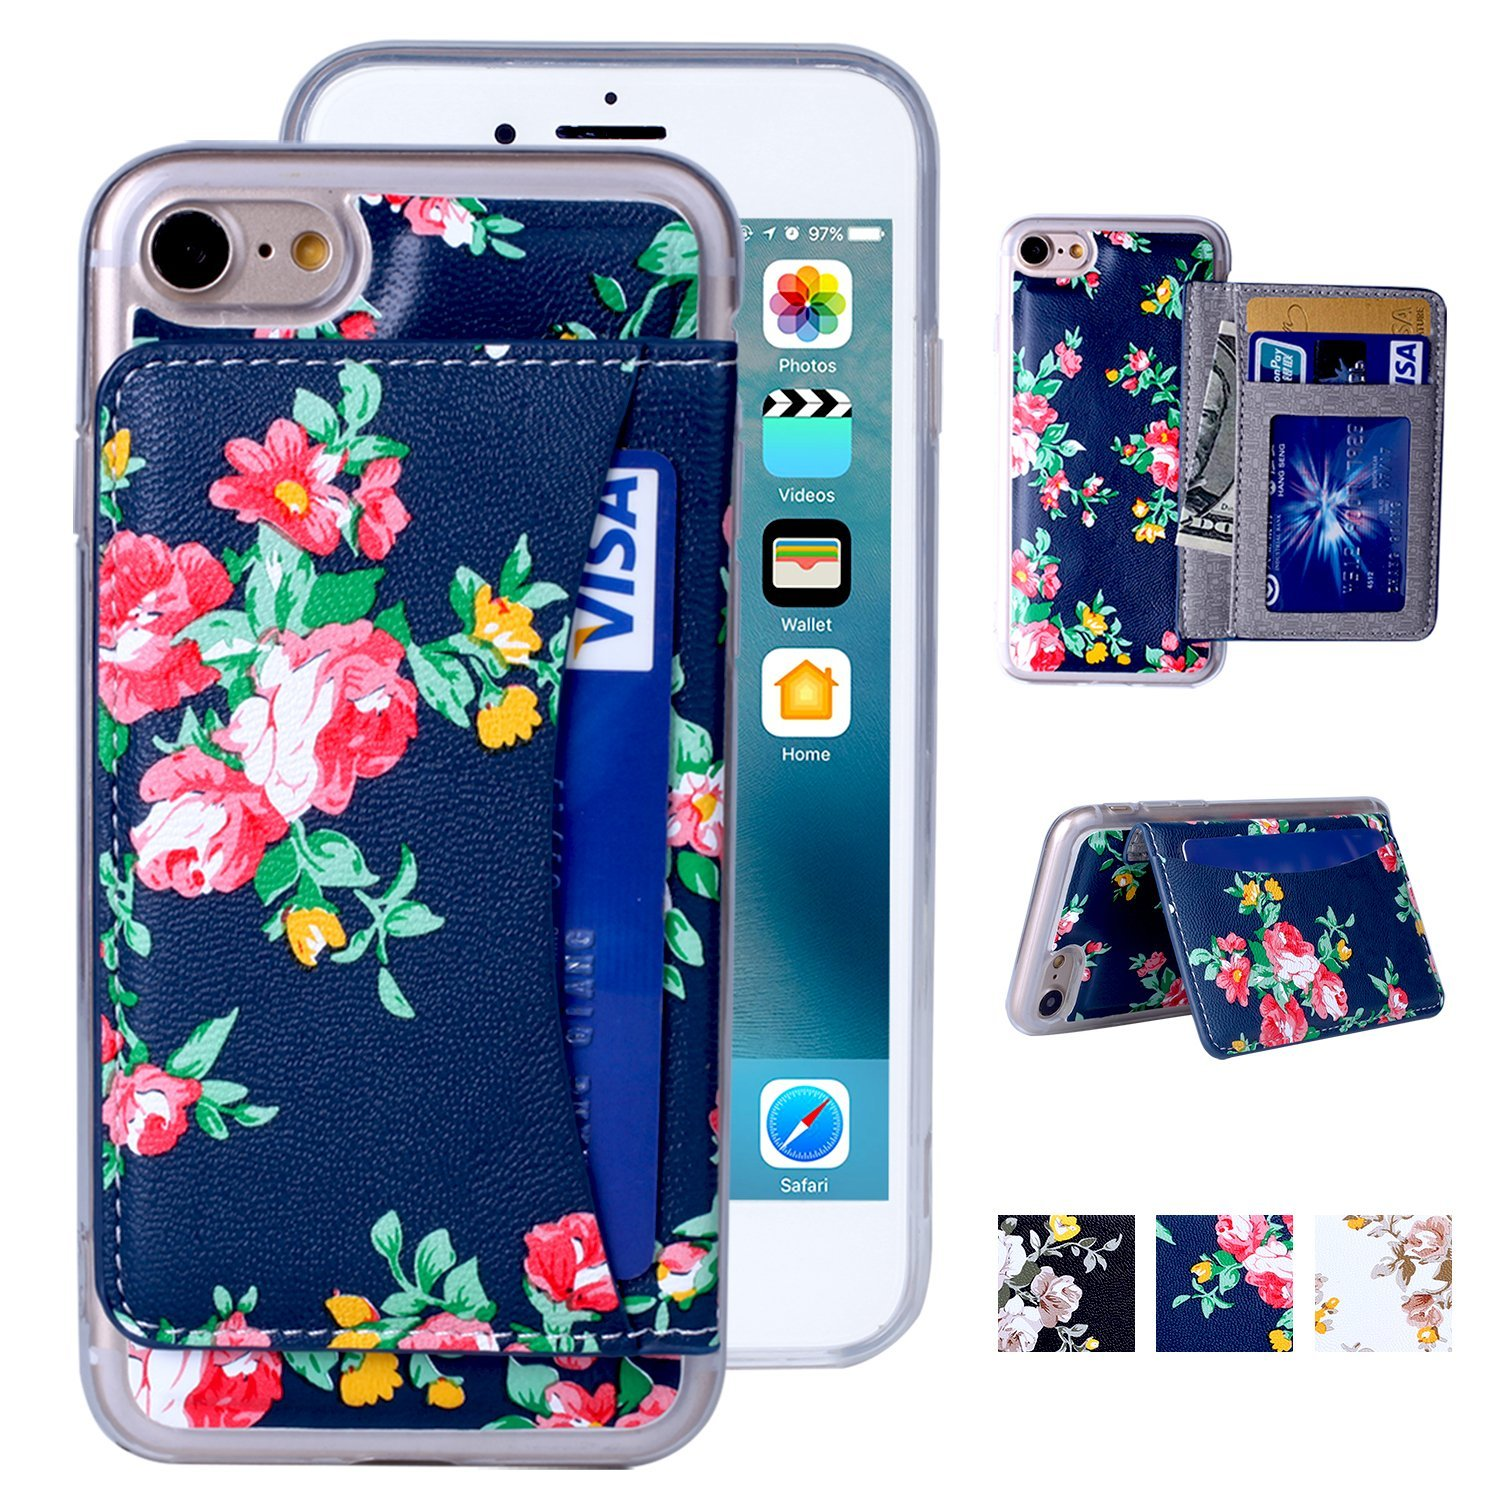 iPhone 7 Case, Tripky iPhone 7 Flower Floral Flip Folio Wallet Cases PU Leather Magnetic Holster Phone Case for iPhone 7 (4.7-inch) with [kickstand] [3 Credit Card Slots](Navy Blue&Red Flower)